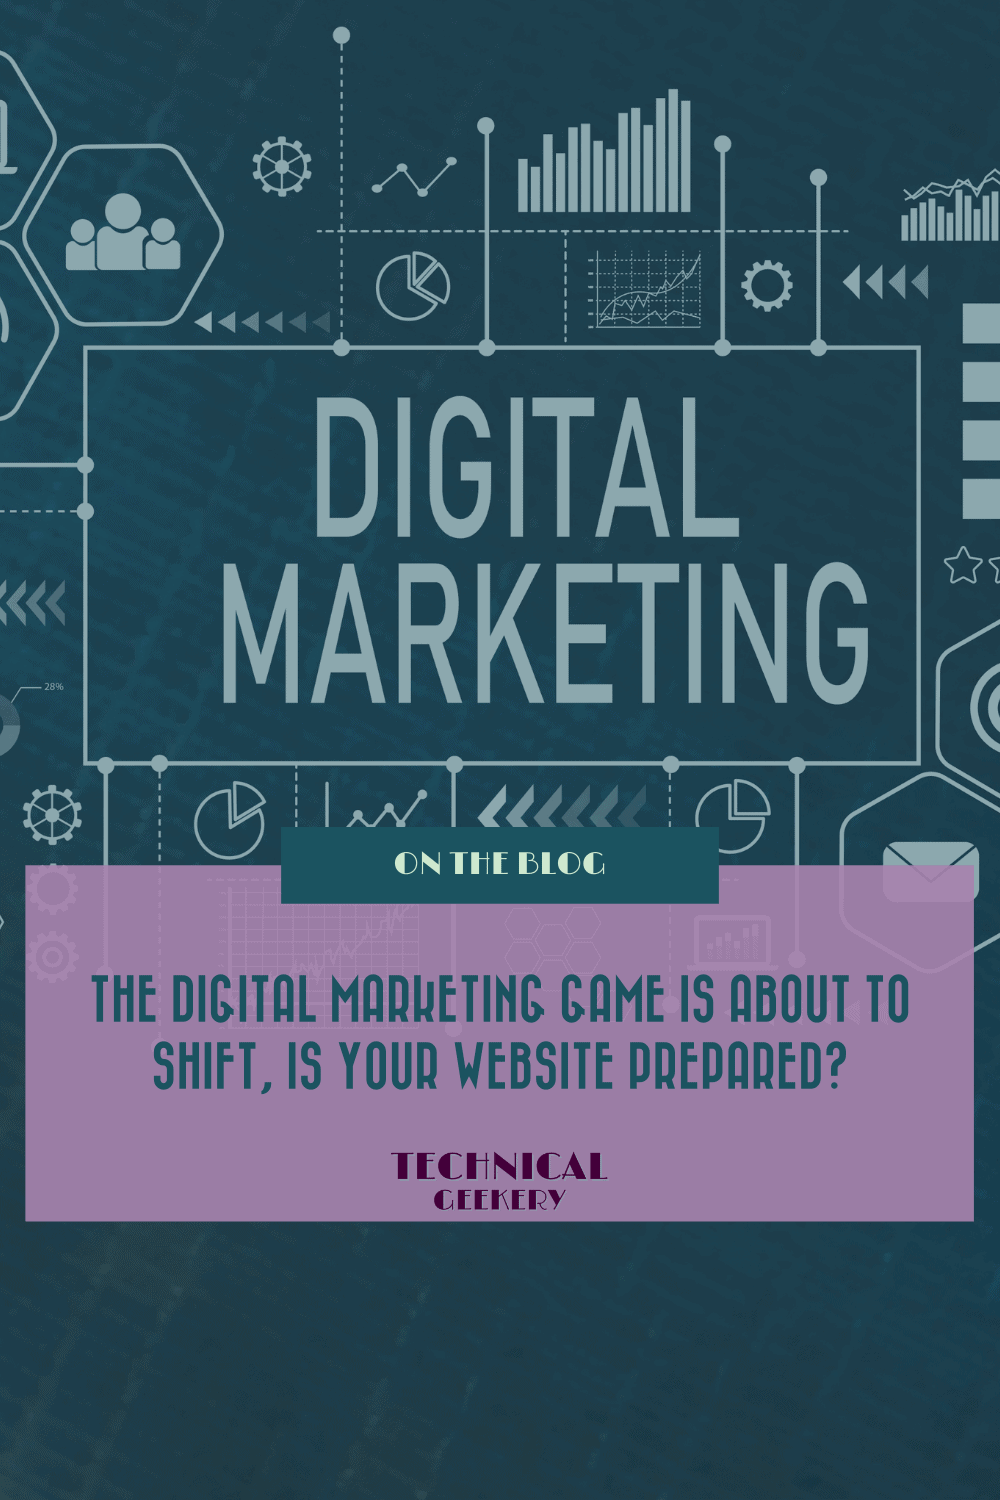 The digital marketing game is about to shift, is your website prepared?